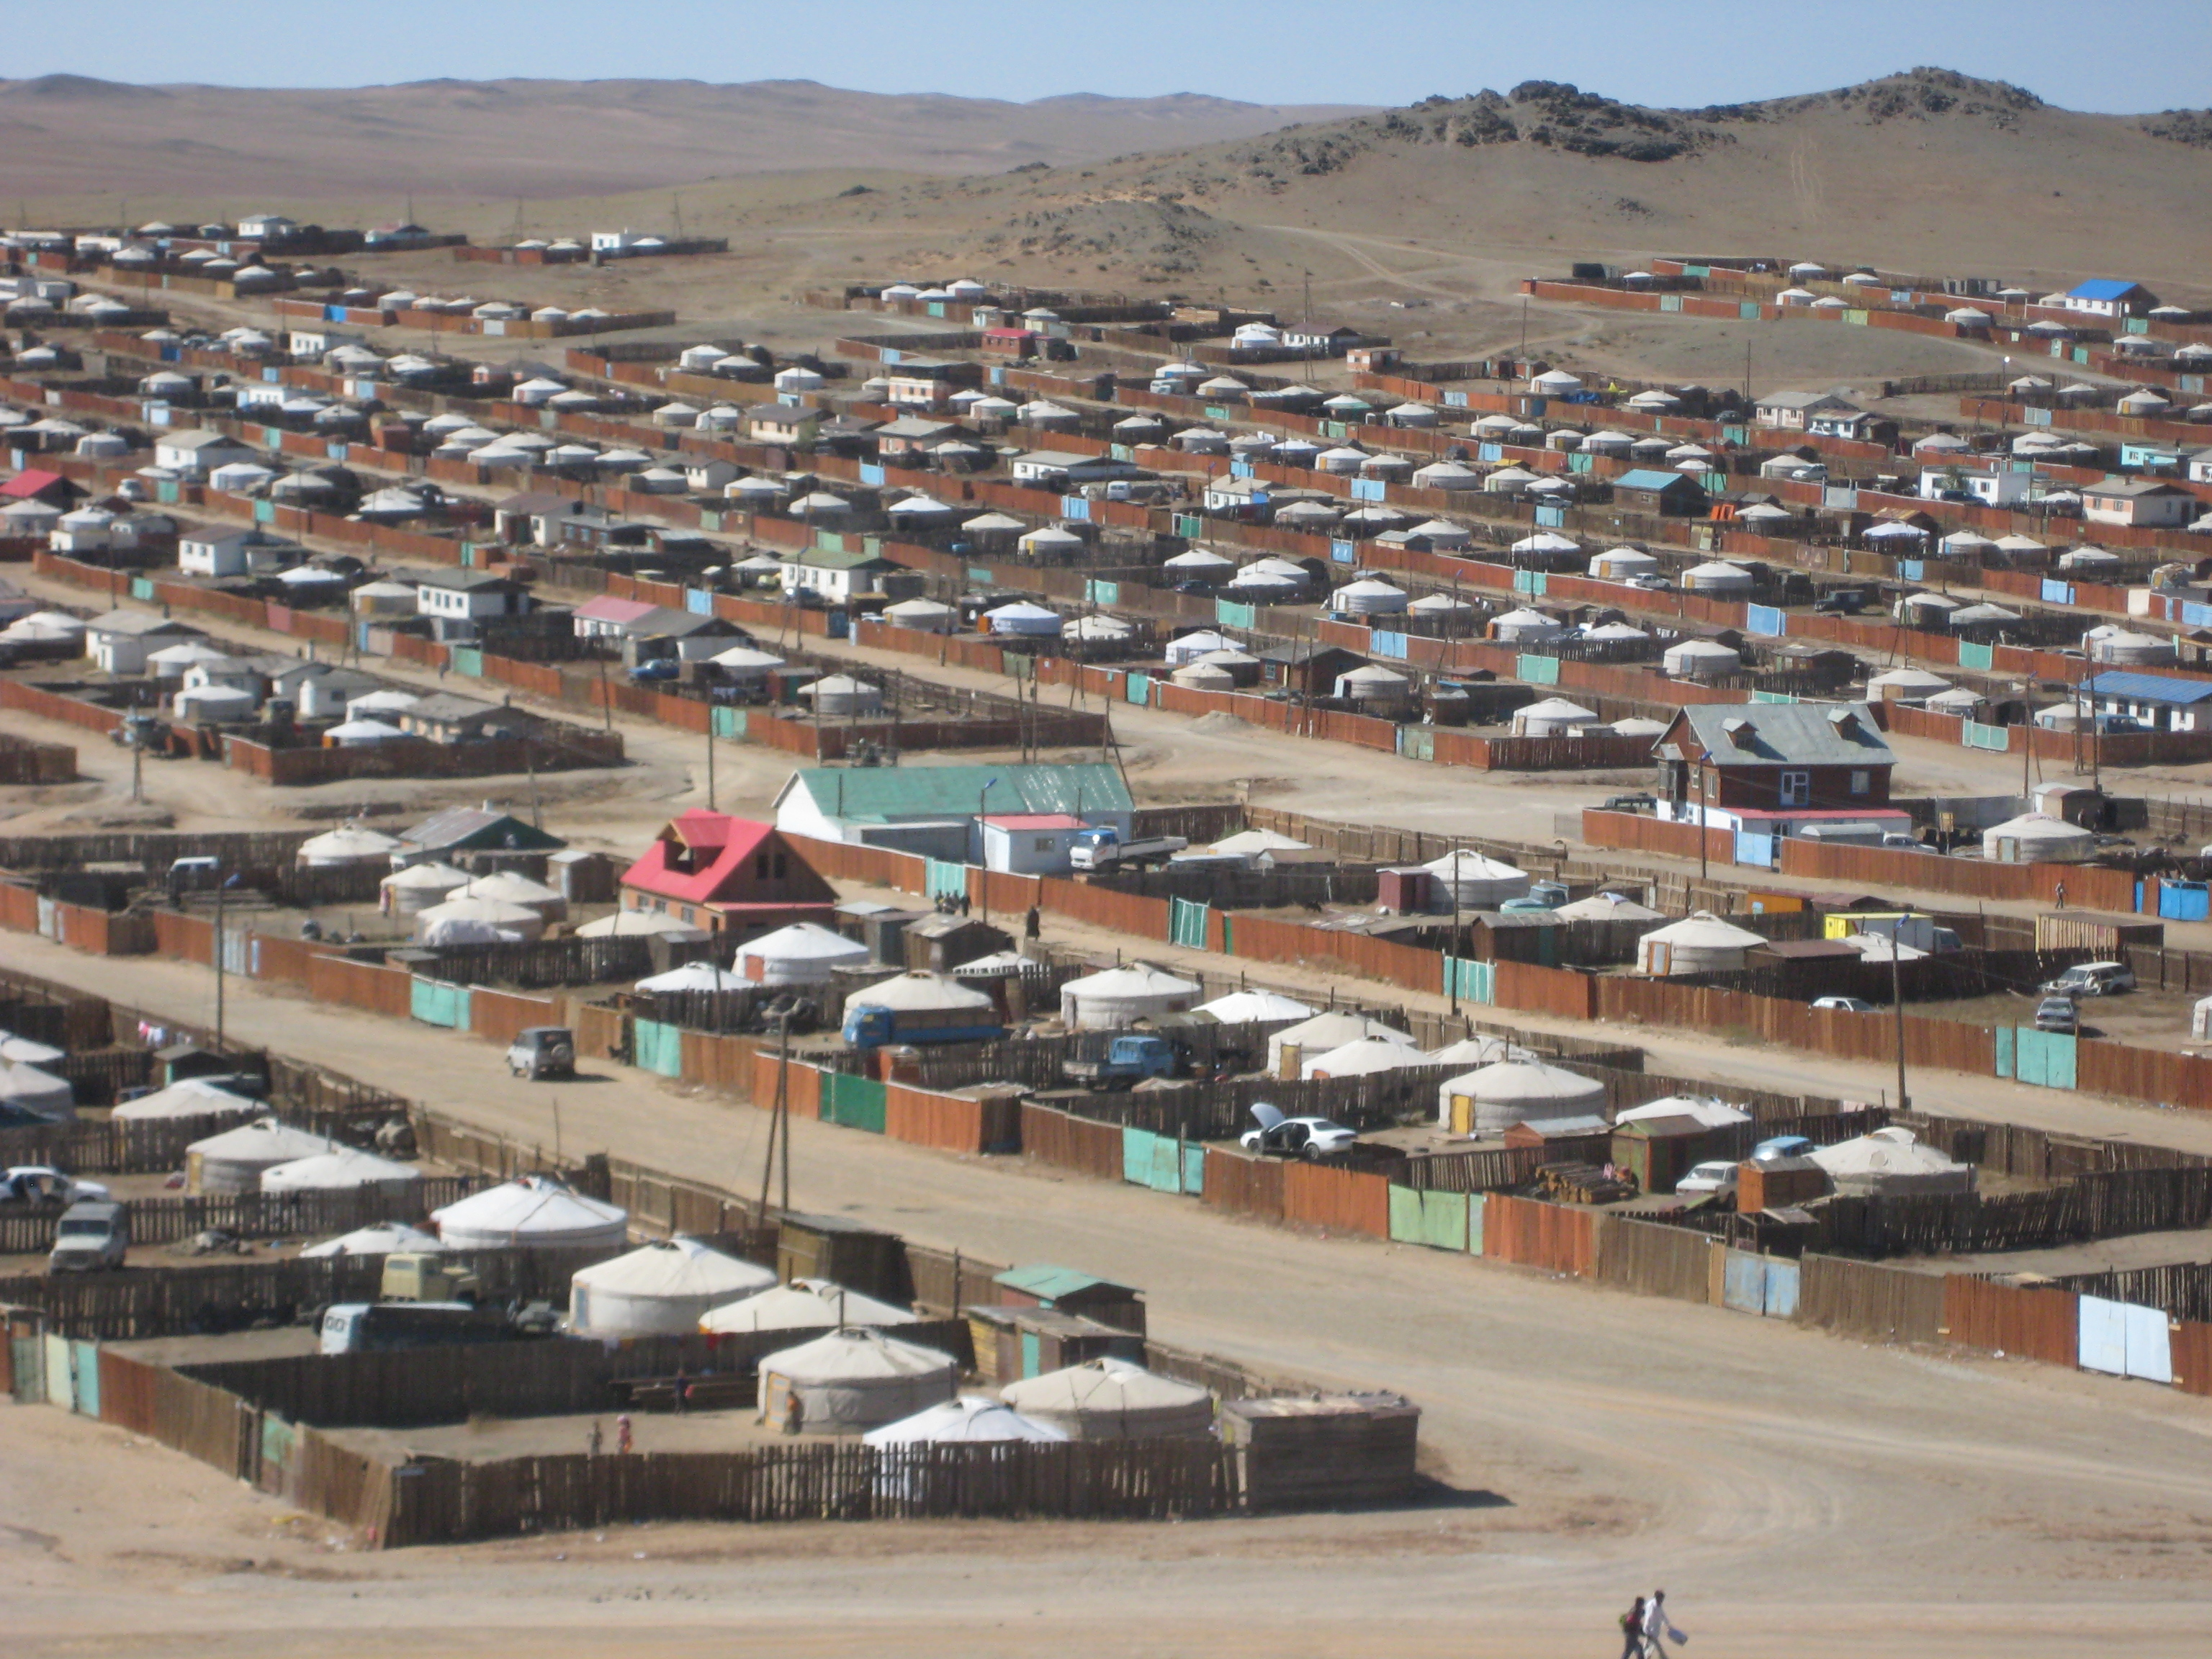 Ger Neighborhood in Bayankhongor, Mongolia